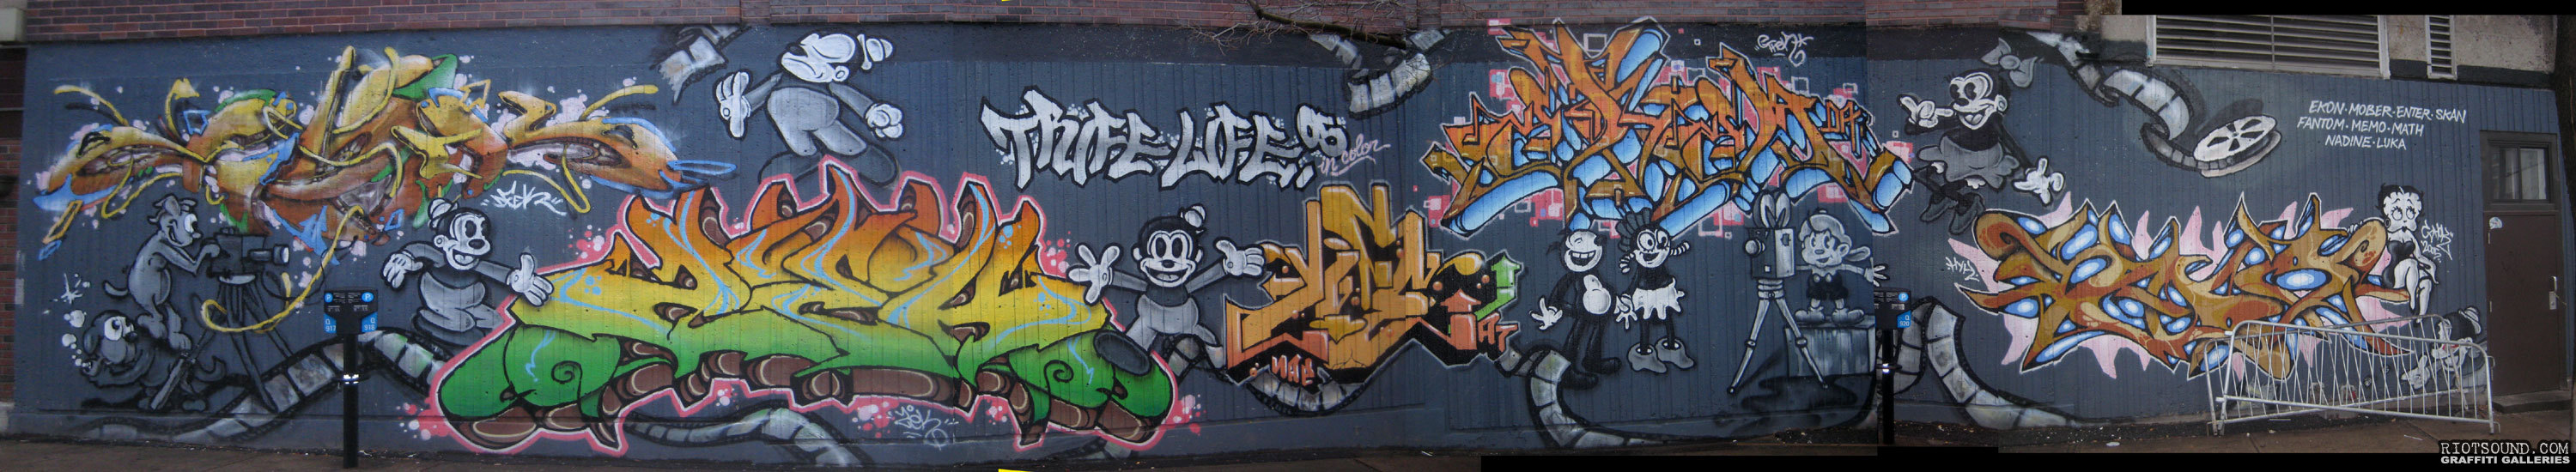 Graffiti Crew Production